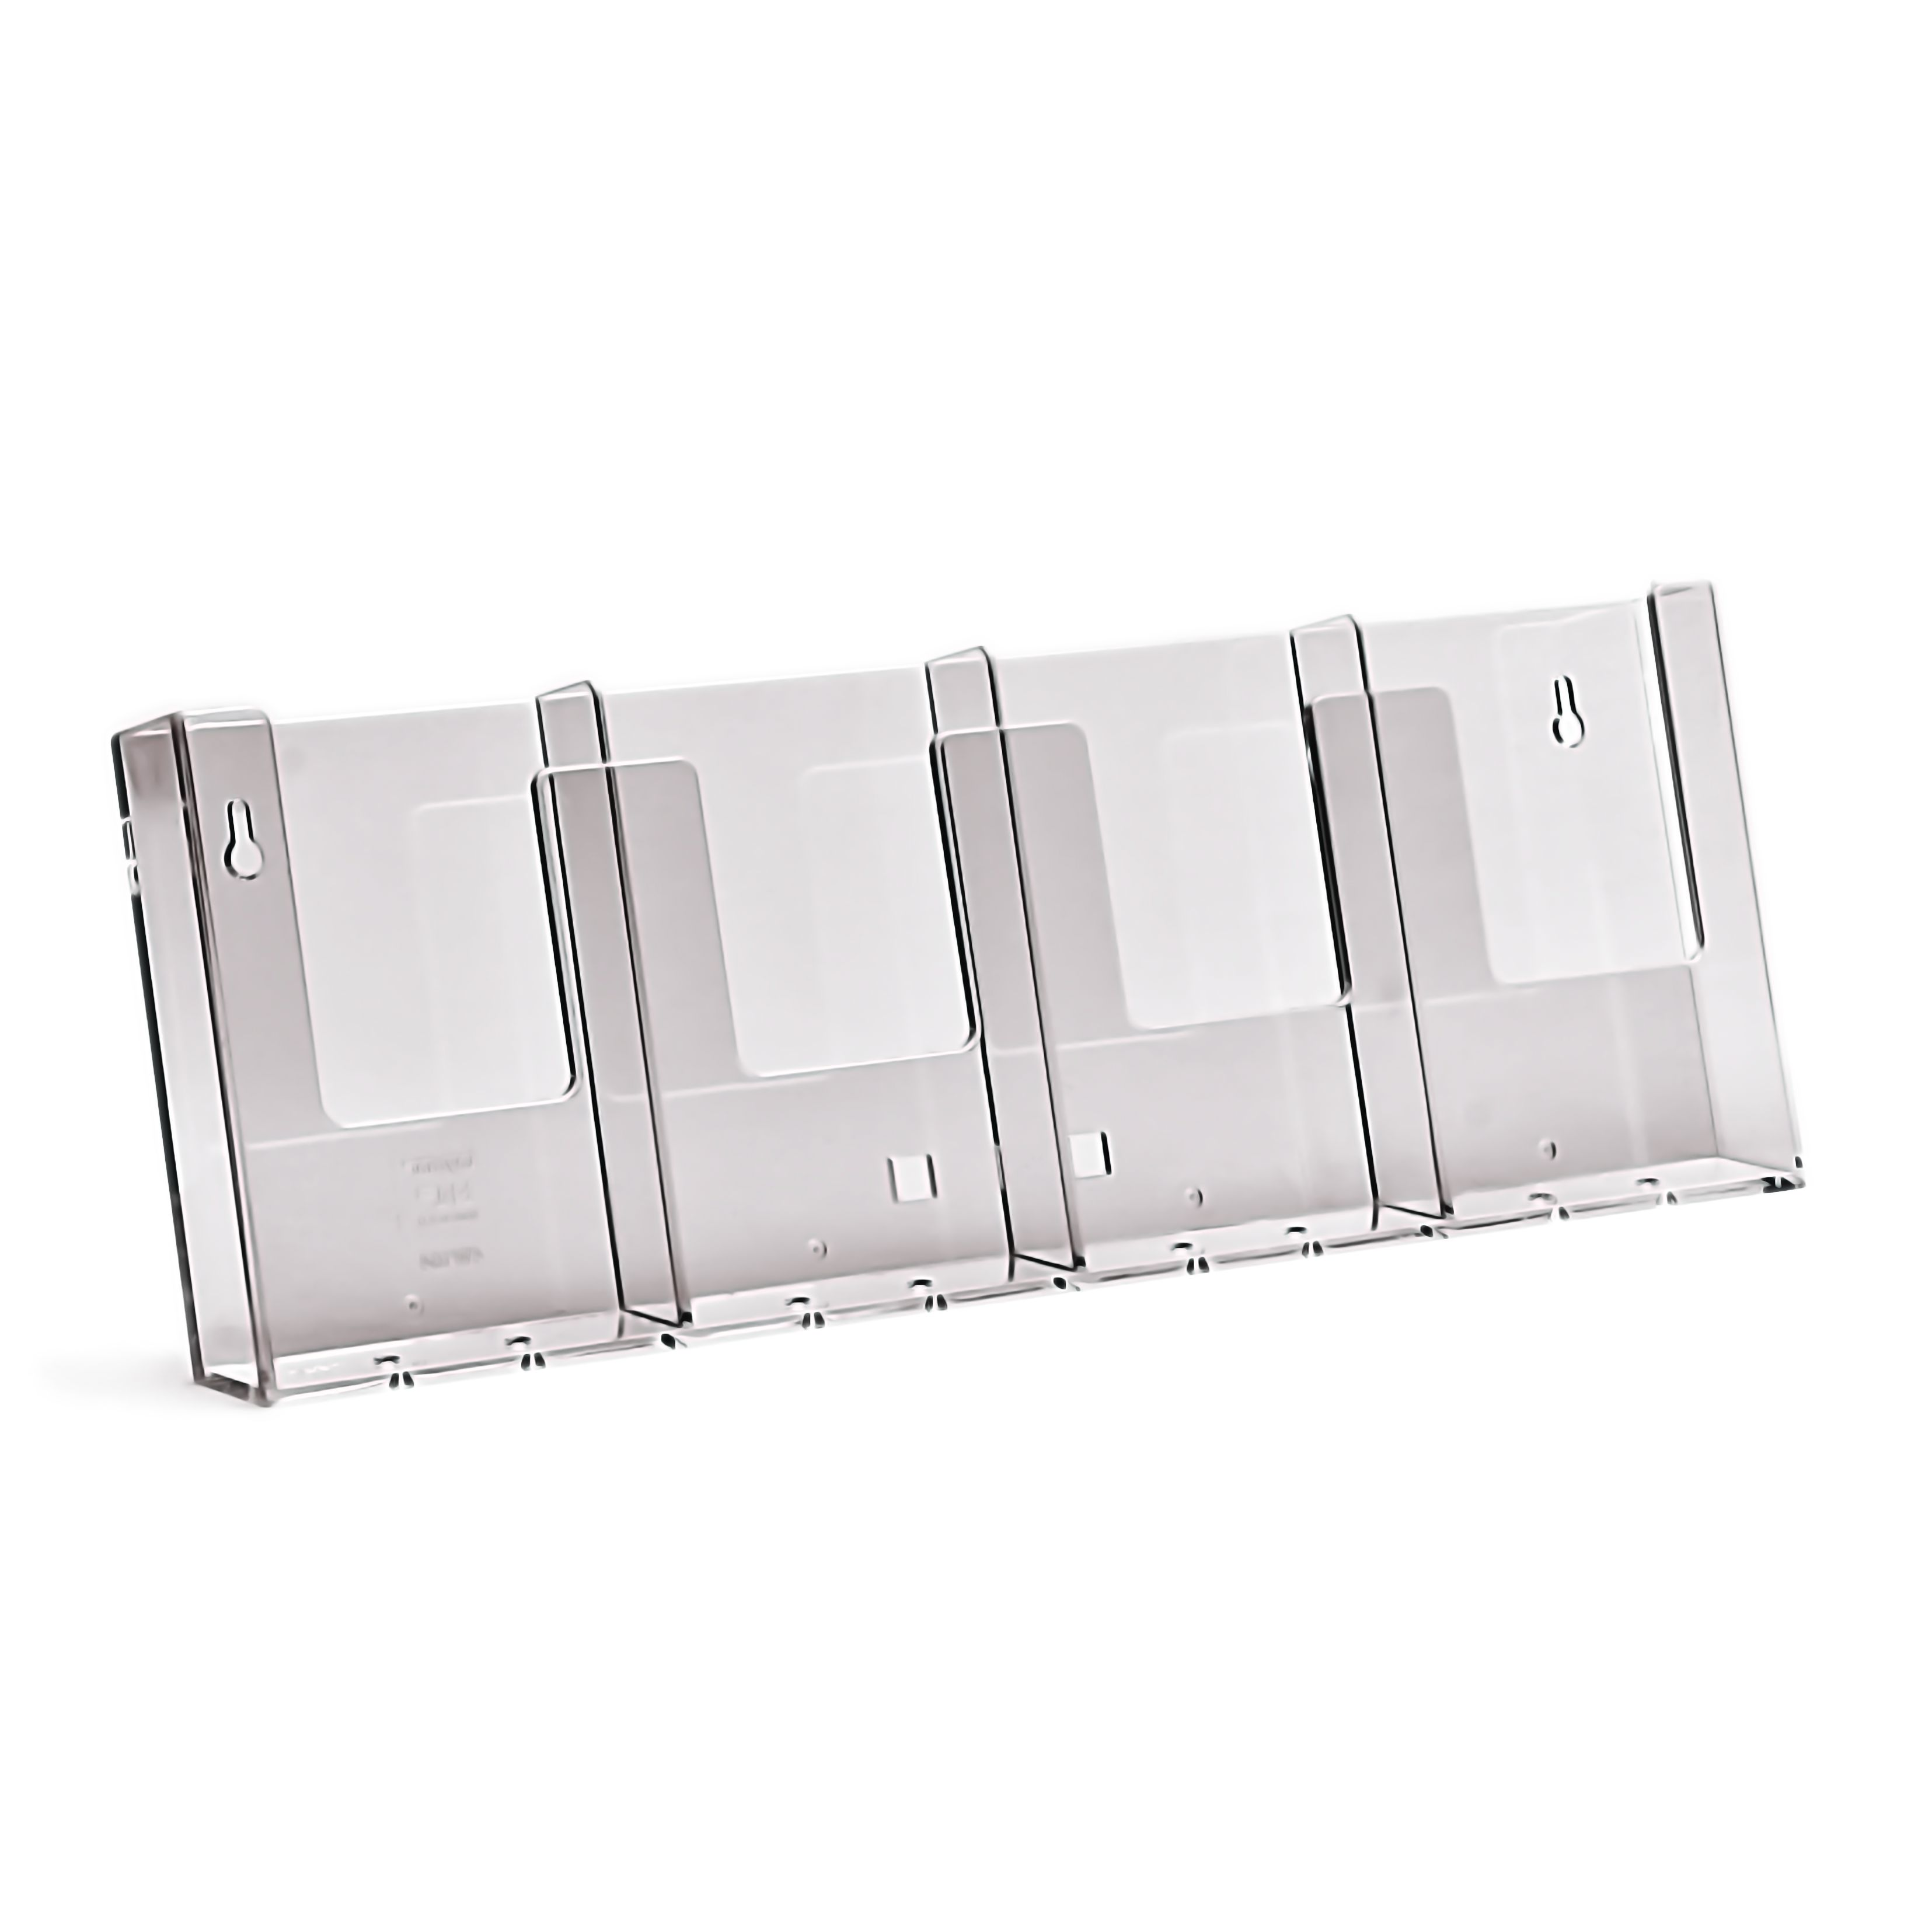 Brochure Holder ? of A4 Wall Mount Landscape x 4 Compartments